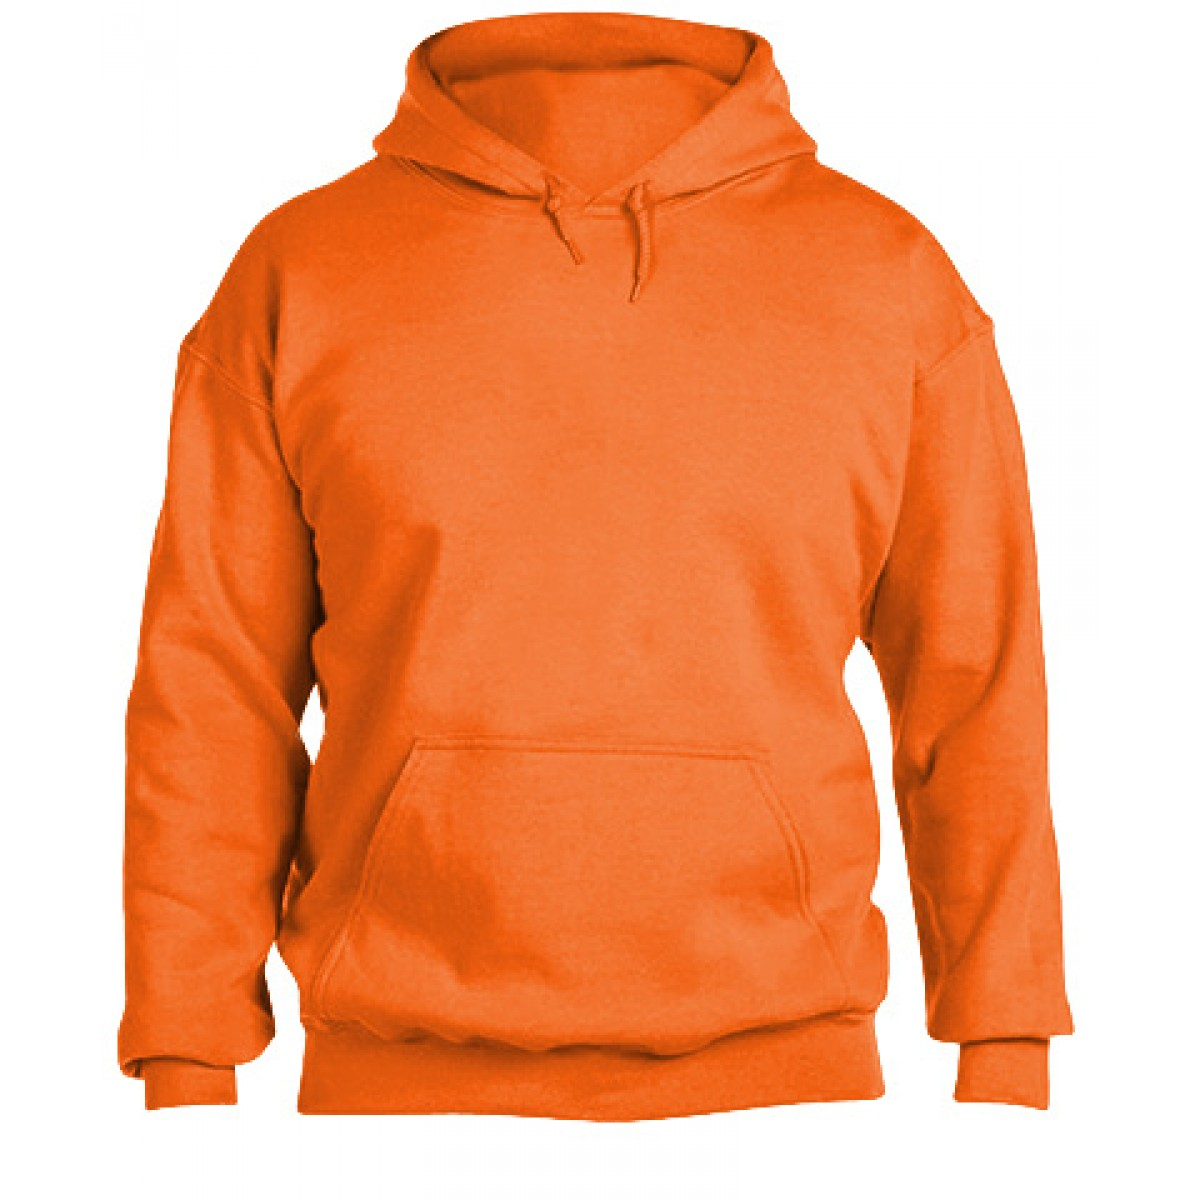 Hooded Sweatshirt 50/50 Heavy Blend-Safety Orange-3XL